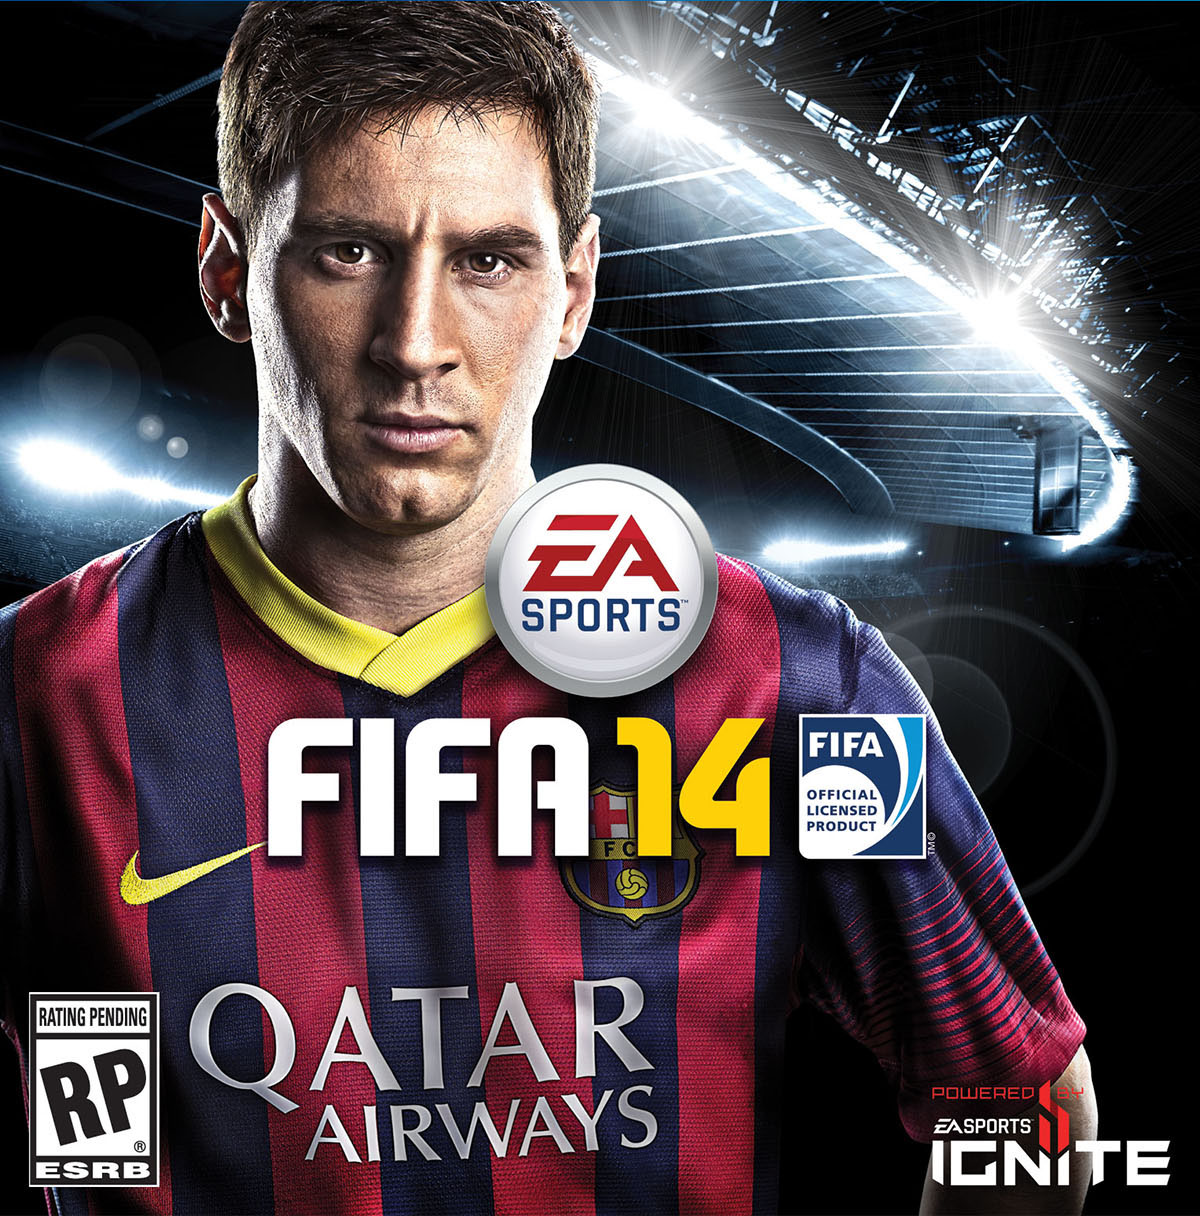 FIFA 14 Game Download For Android PPSSPP (psp) Emulator ...